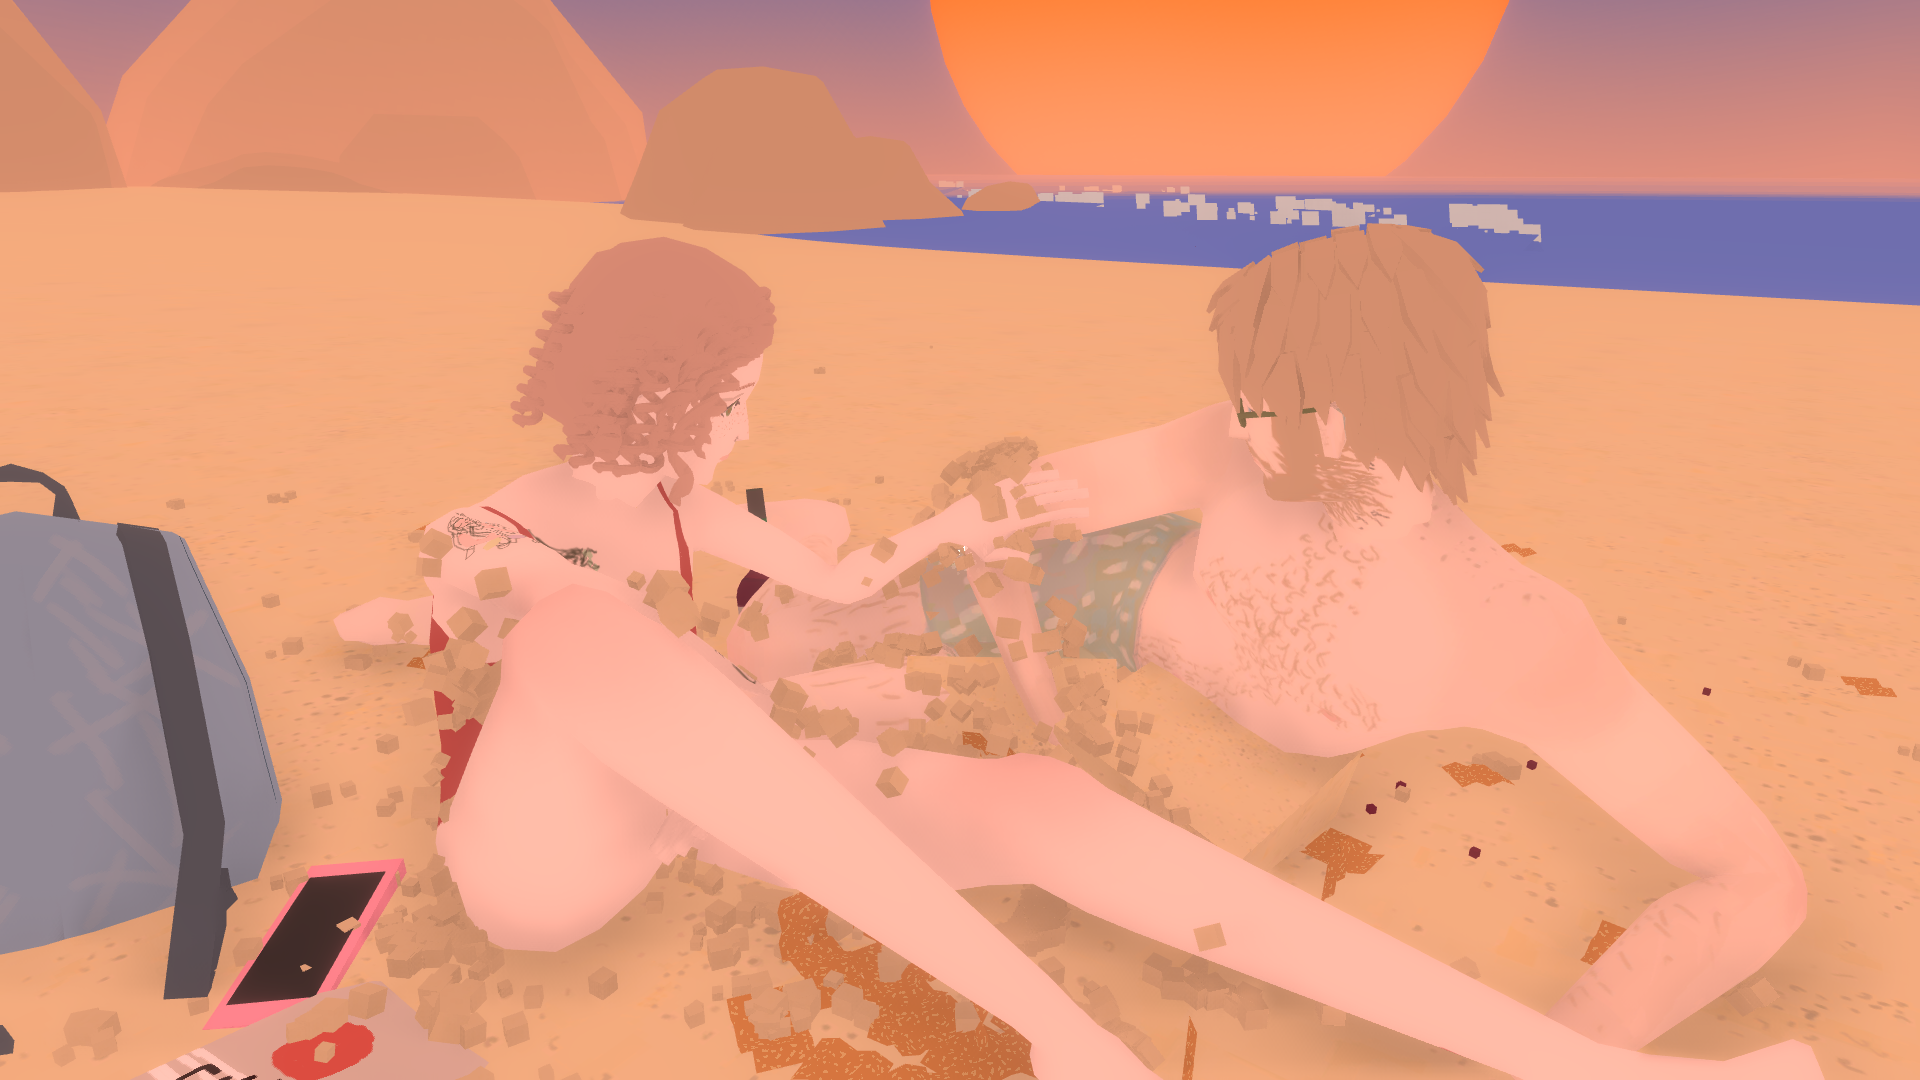 Nina Freeman and Jake Jefferies Discuss Personal Vignette 'Beach Date'